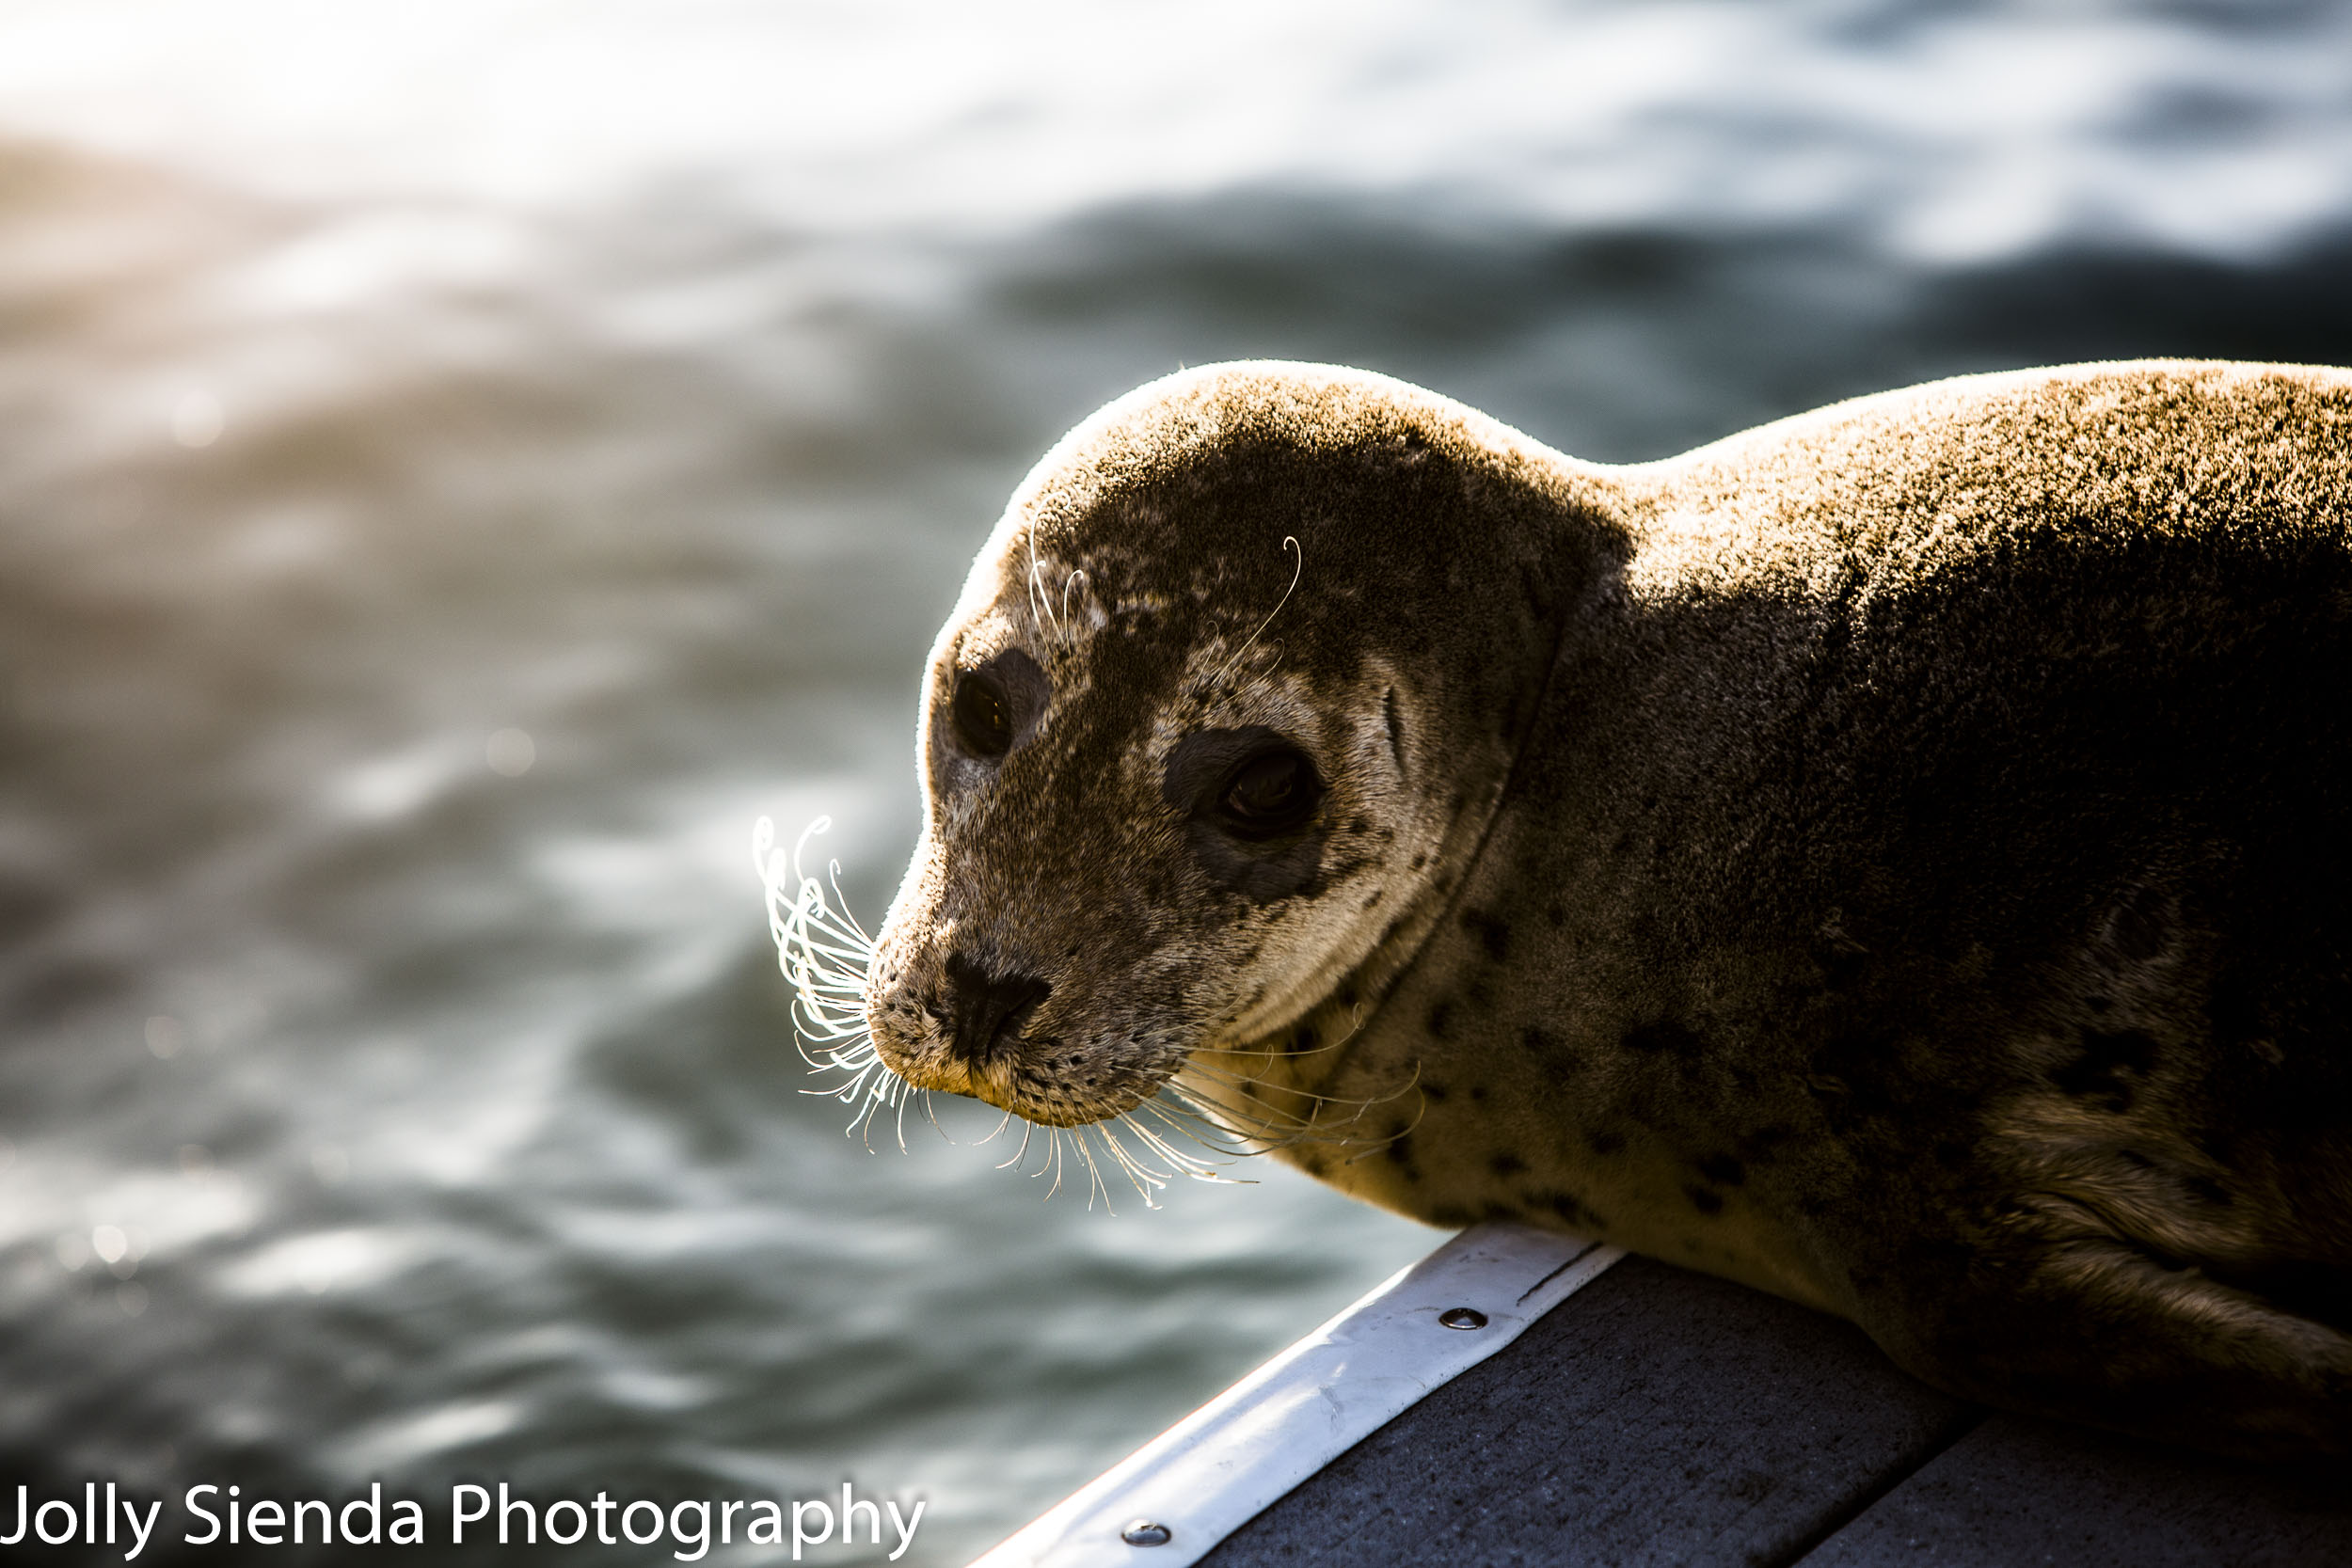 Harbor Seal with long whiskers gets some sun on the dock